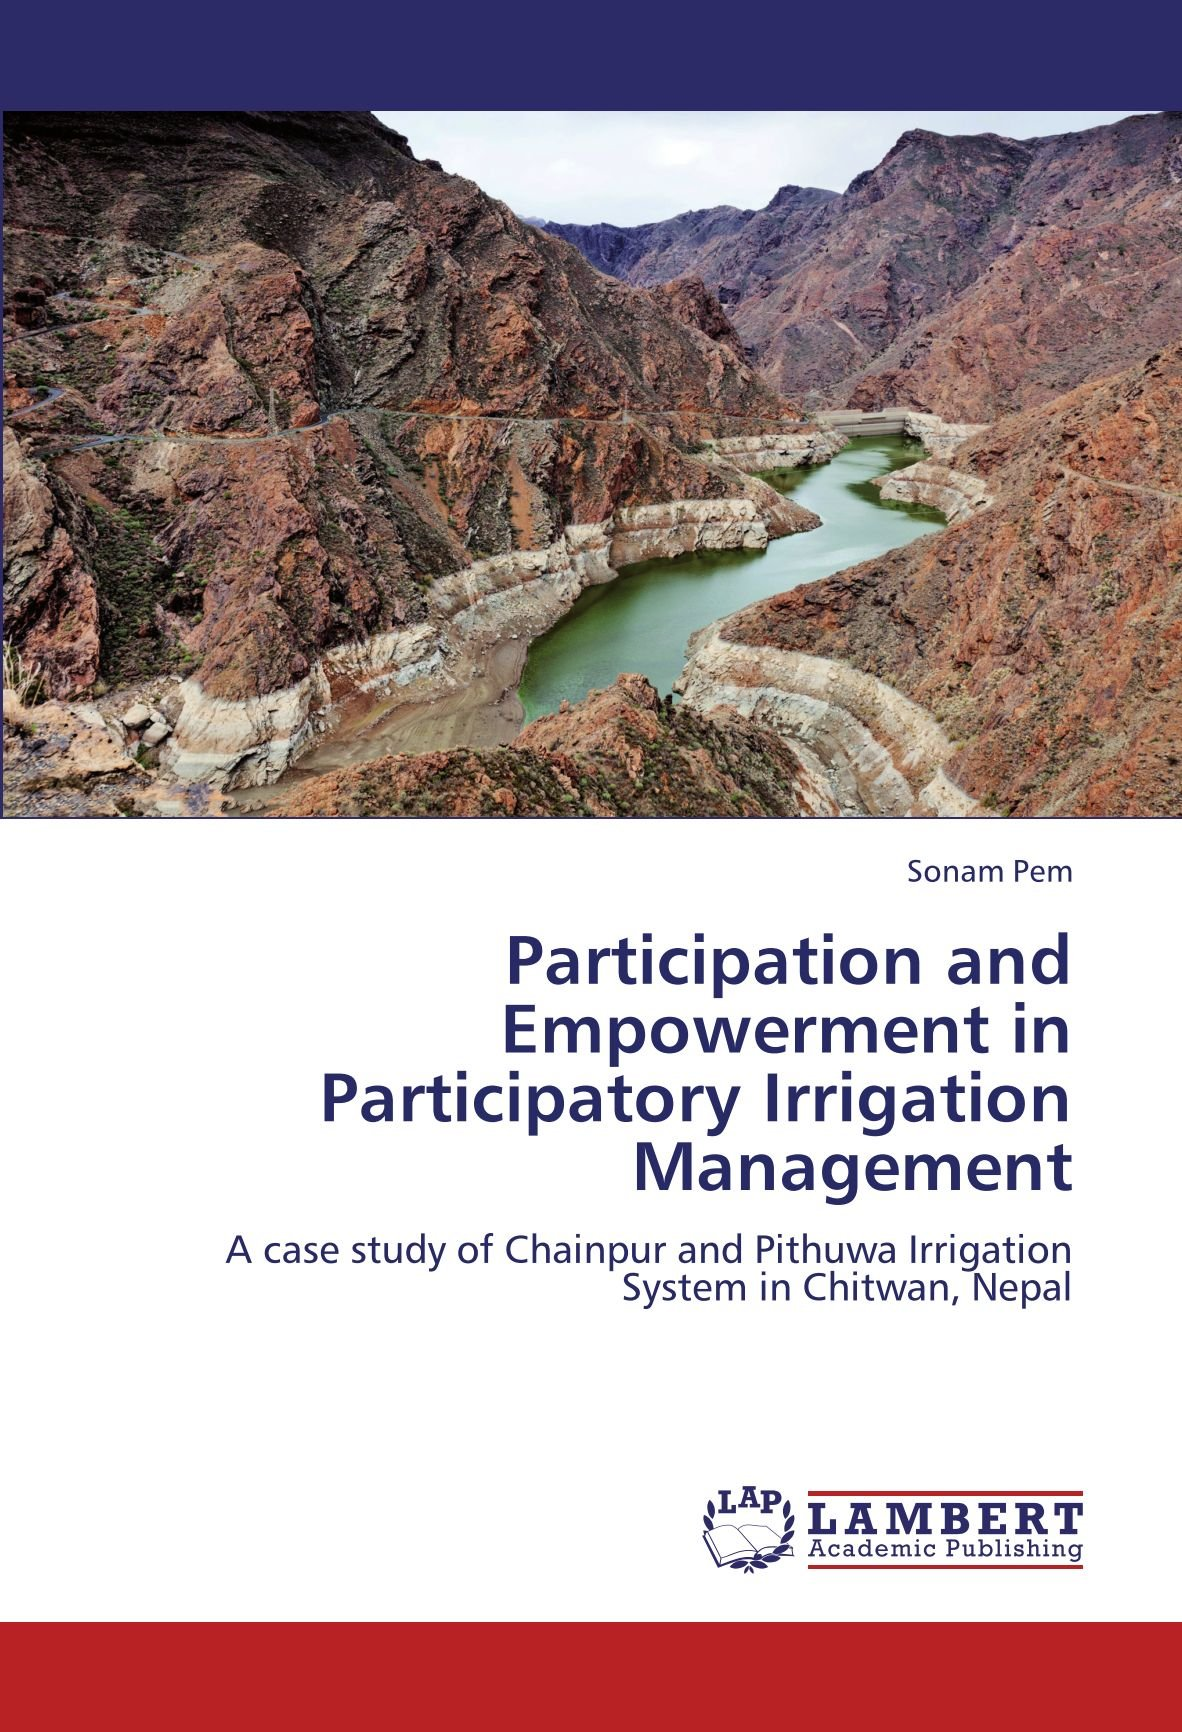 Download Participation and Empowerment in Participatory Irrigation Management: A case study of Chainpur and Pithuwa Irrigation System in Chitwan, Nepal pdf epub